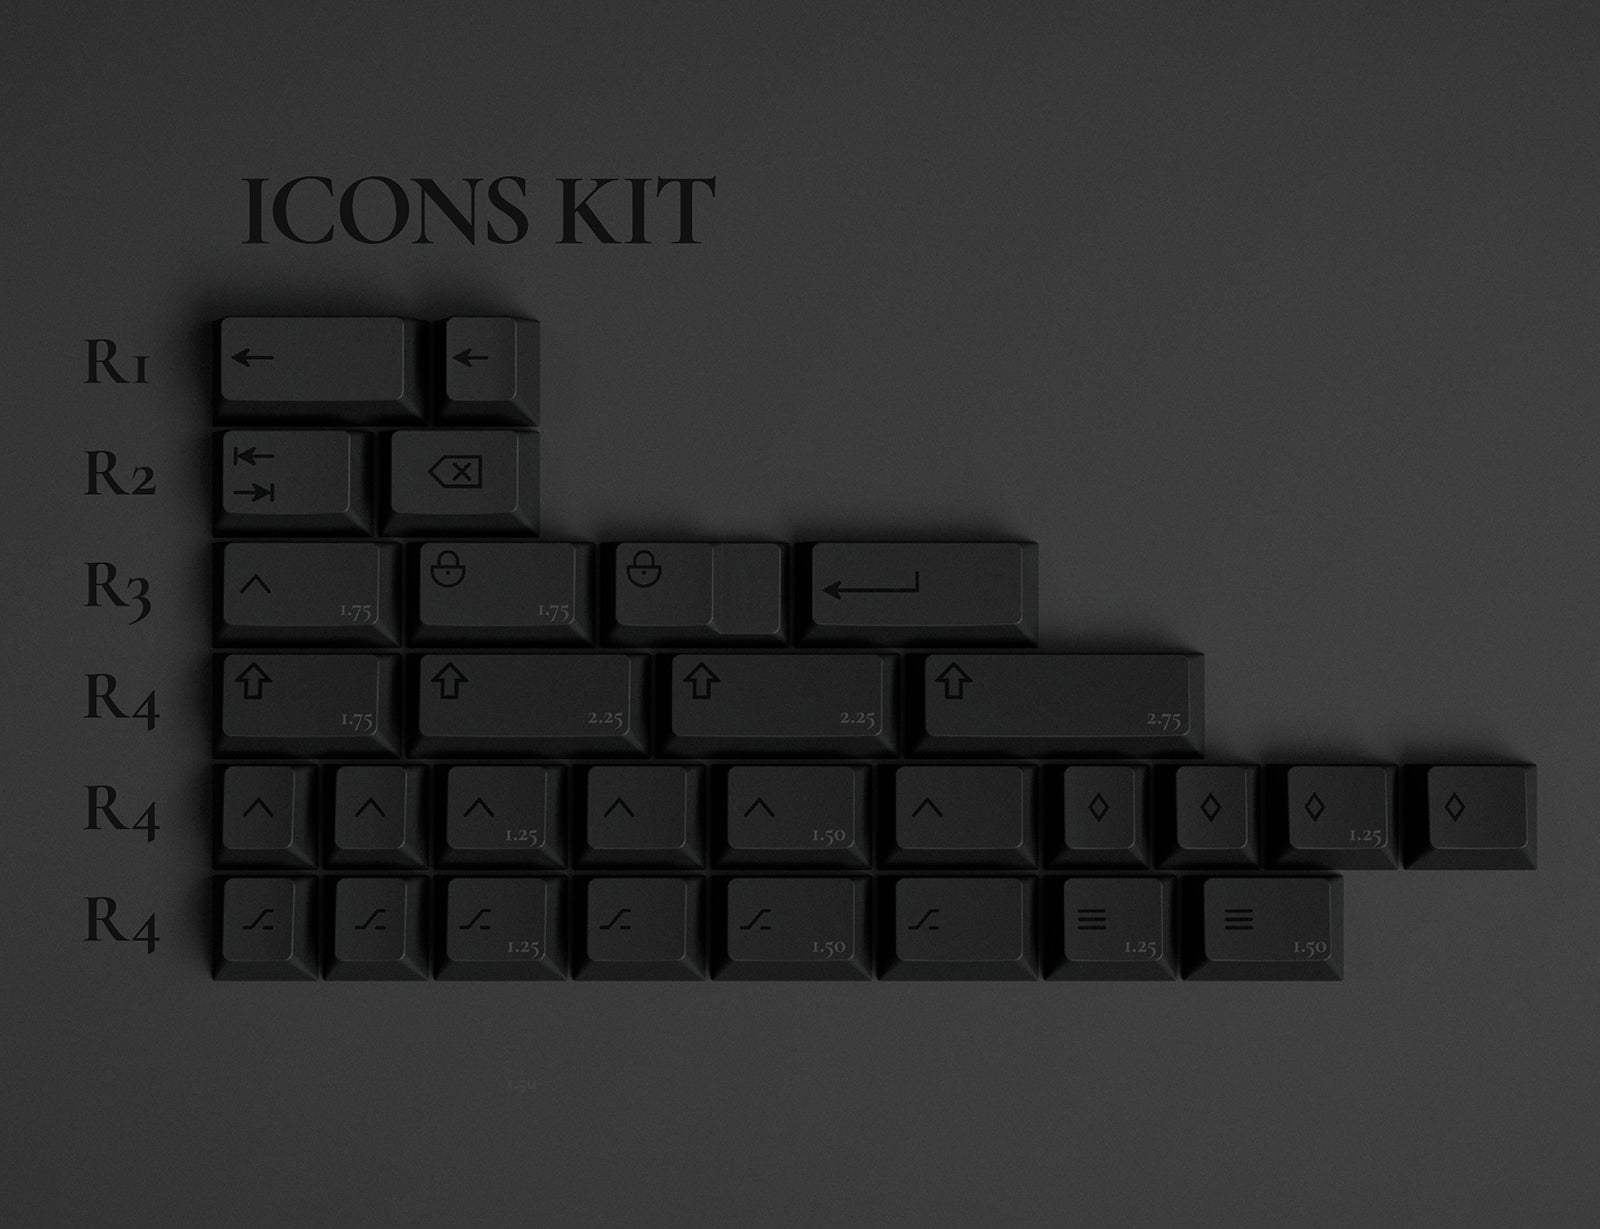 GMK Dark icons kit